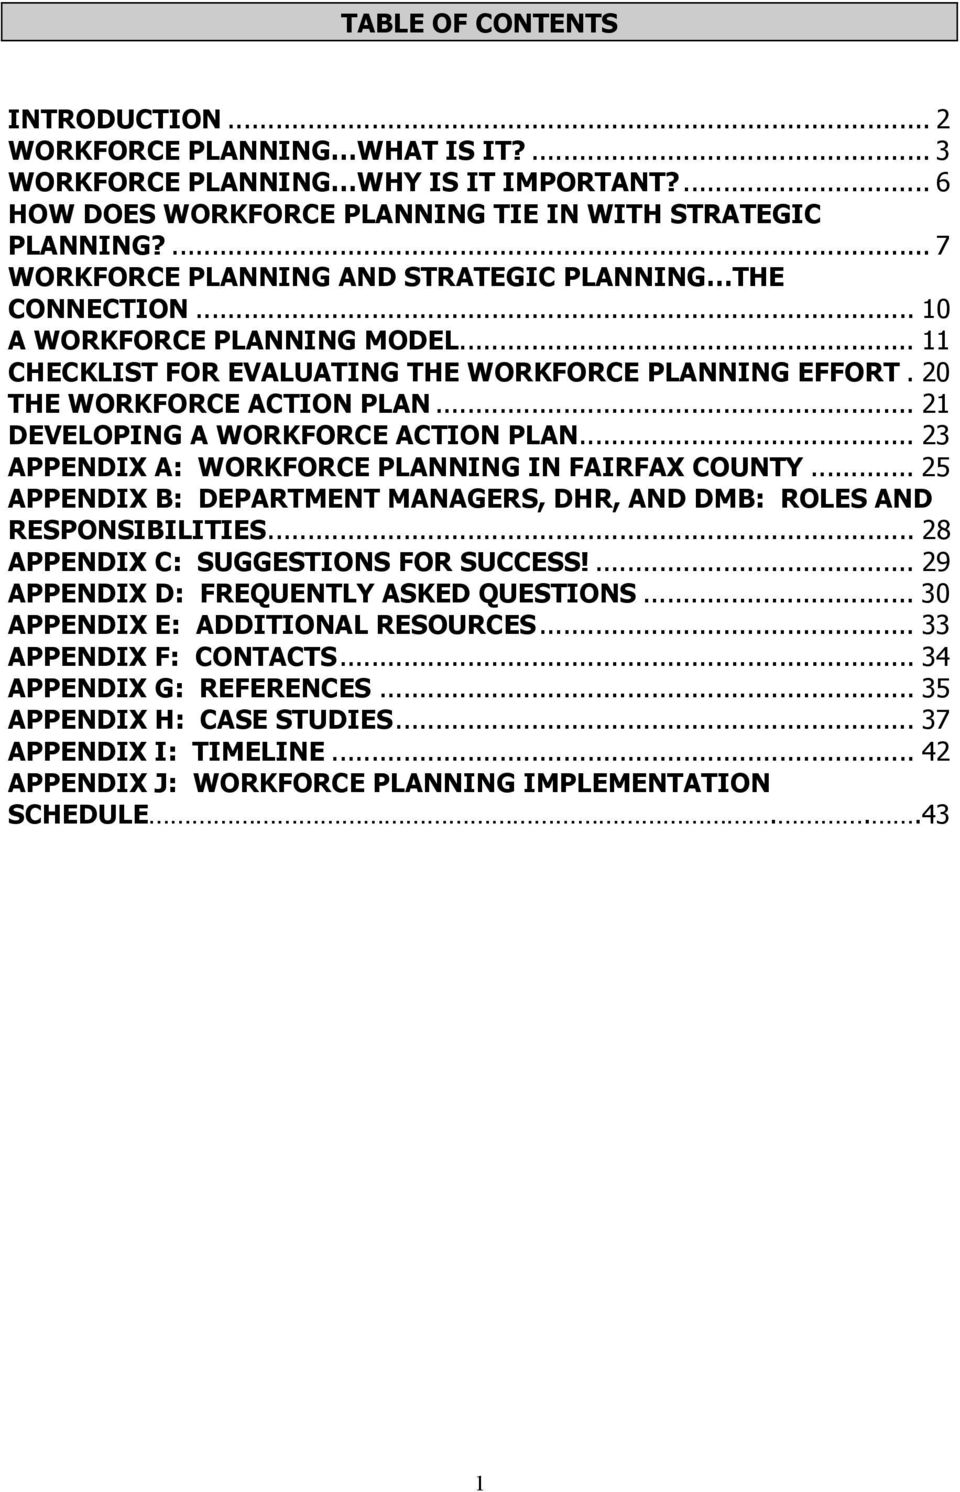 .. 21 DEVELOPING A WORKFORCE ACTION PLAN... 23 APPENDIX A: WORKFORCE PLANNING IN FAIRFAX COUNTY... 25 APPENDIX B: DEPARTMENT MANAGERS, DHR, AND DMB: ROLES AND RESPONSIBILITIES.